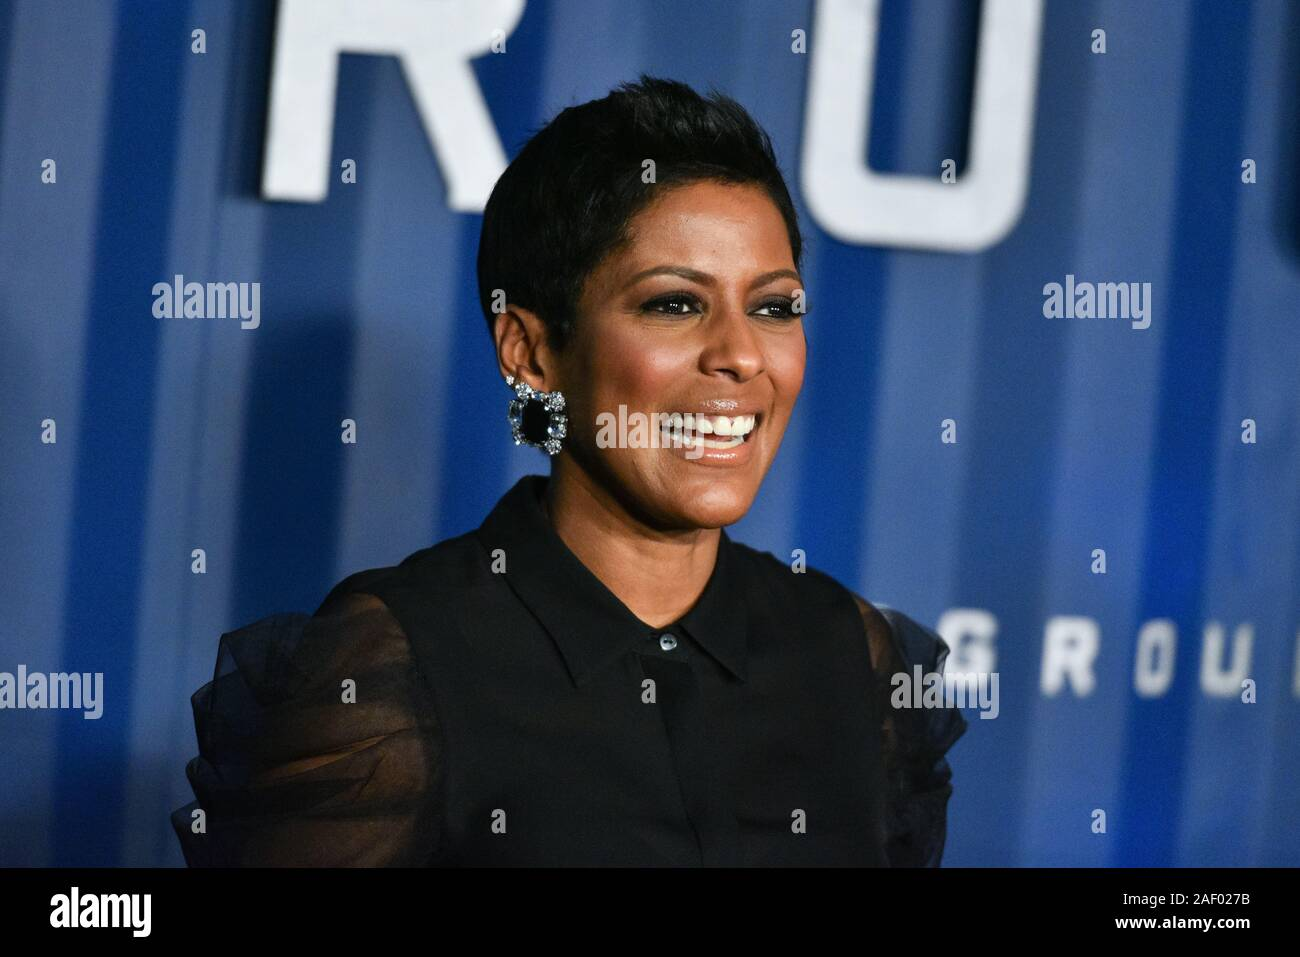 "Tamron Hall attends Netflix's ""6 Underground"" New York Premiere at The Shed on December 10, 2019 in New York City. Stock Photo"